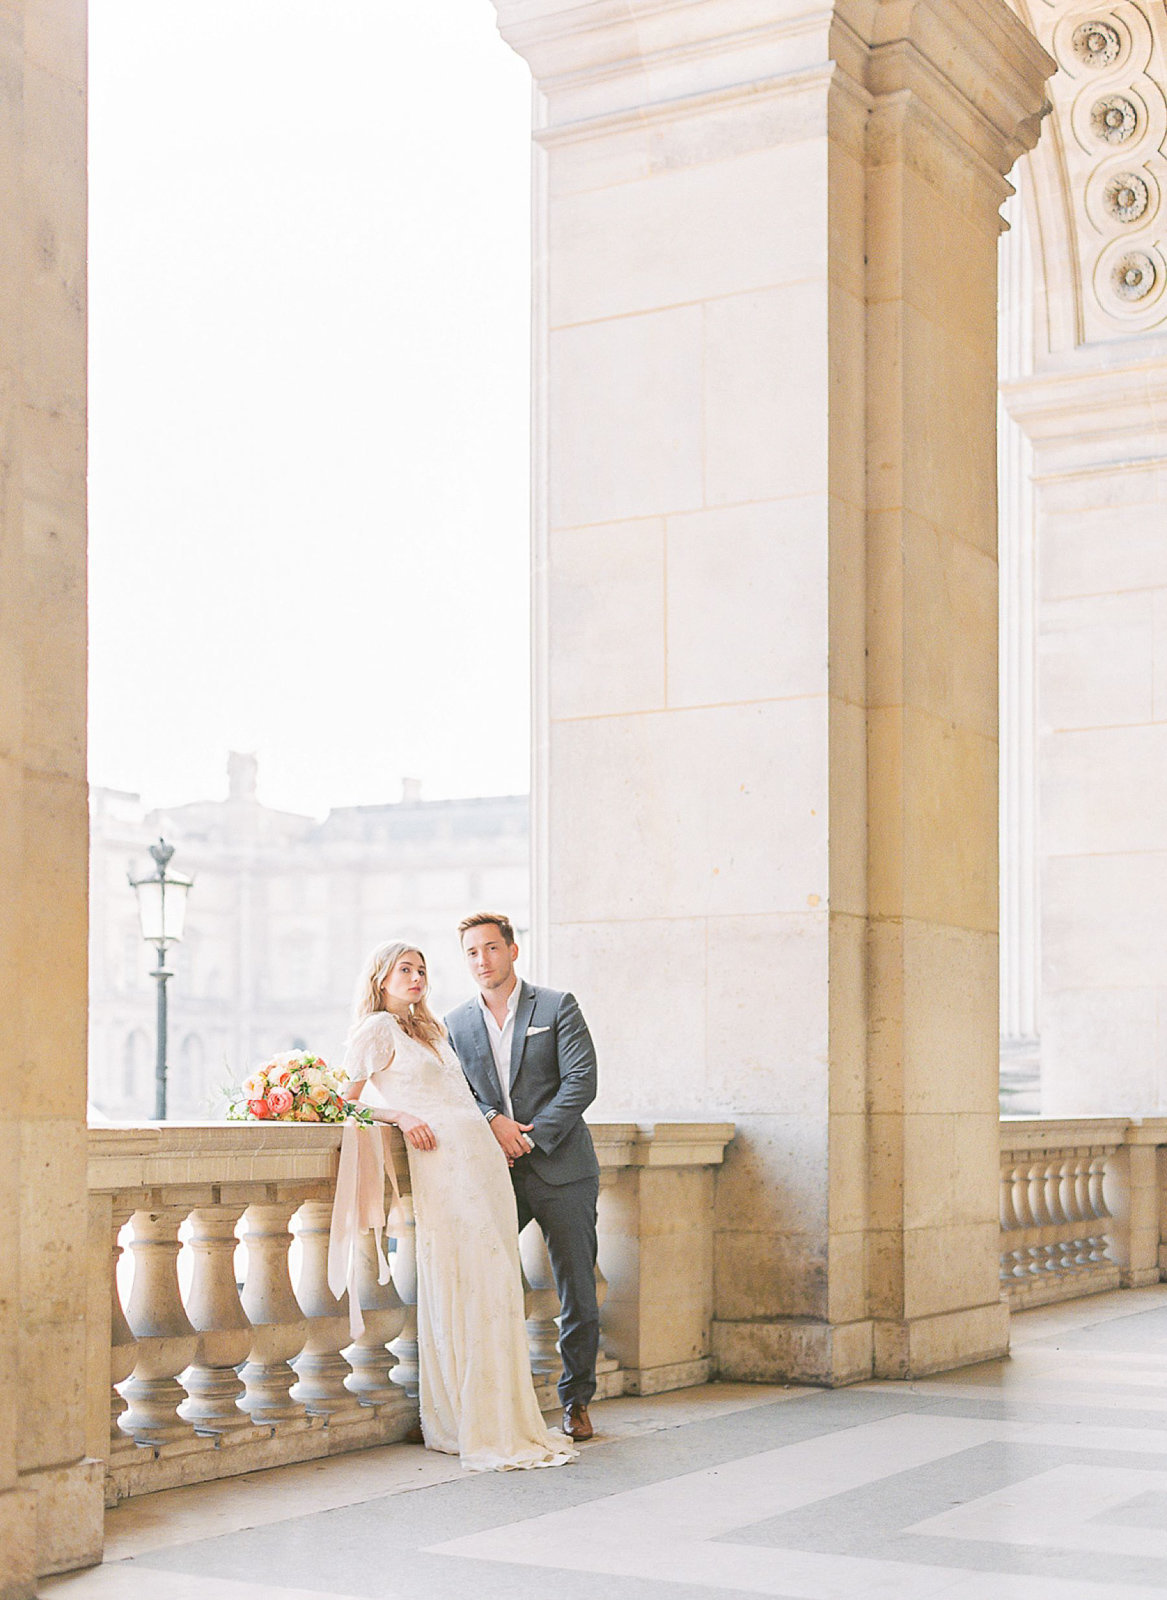 yana-schicht_hamburg_paris-fine-art-film-wedding-photographer_shangri-la_france_036